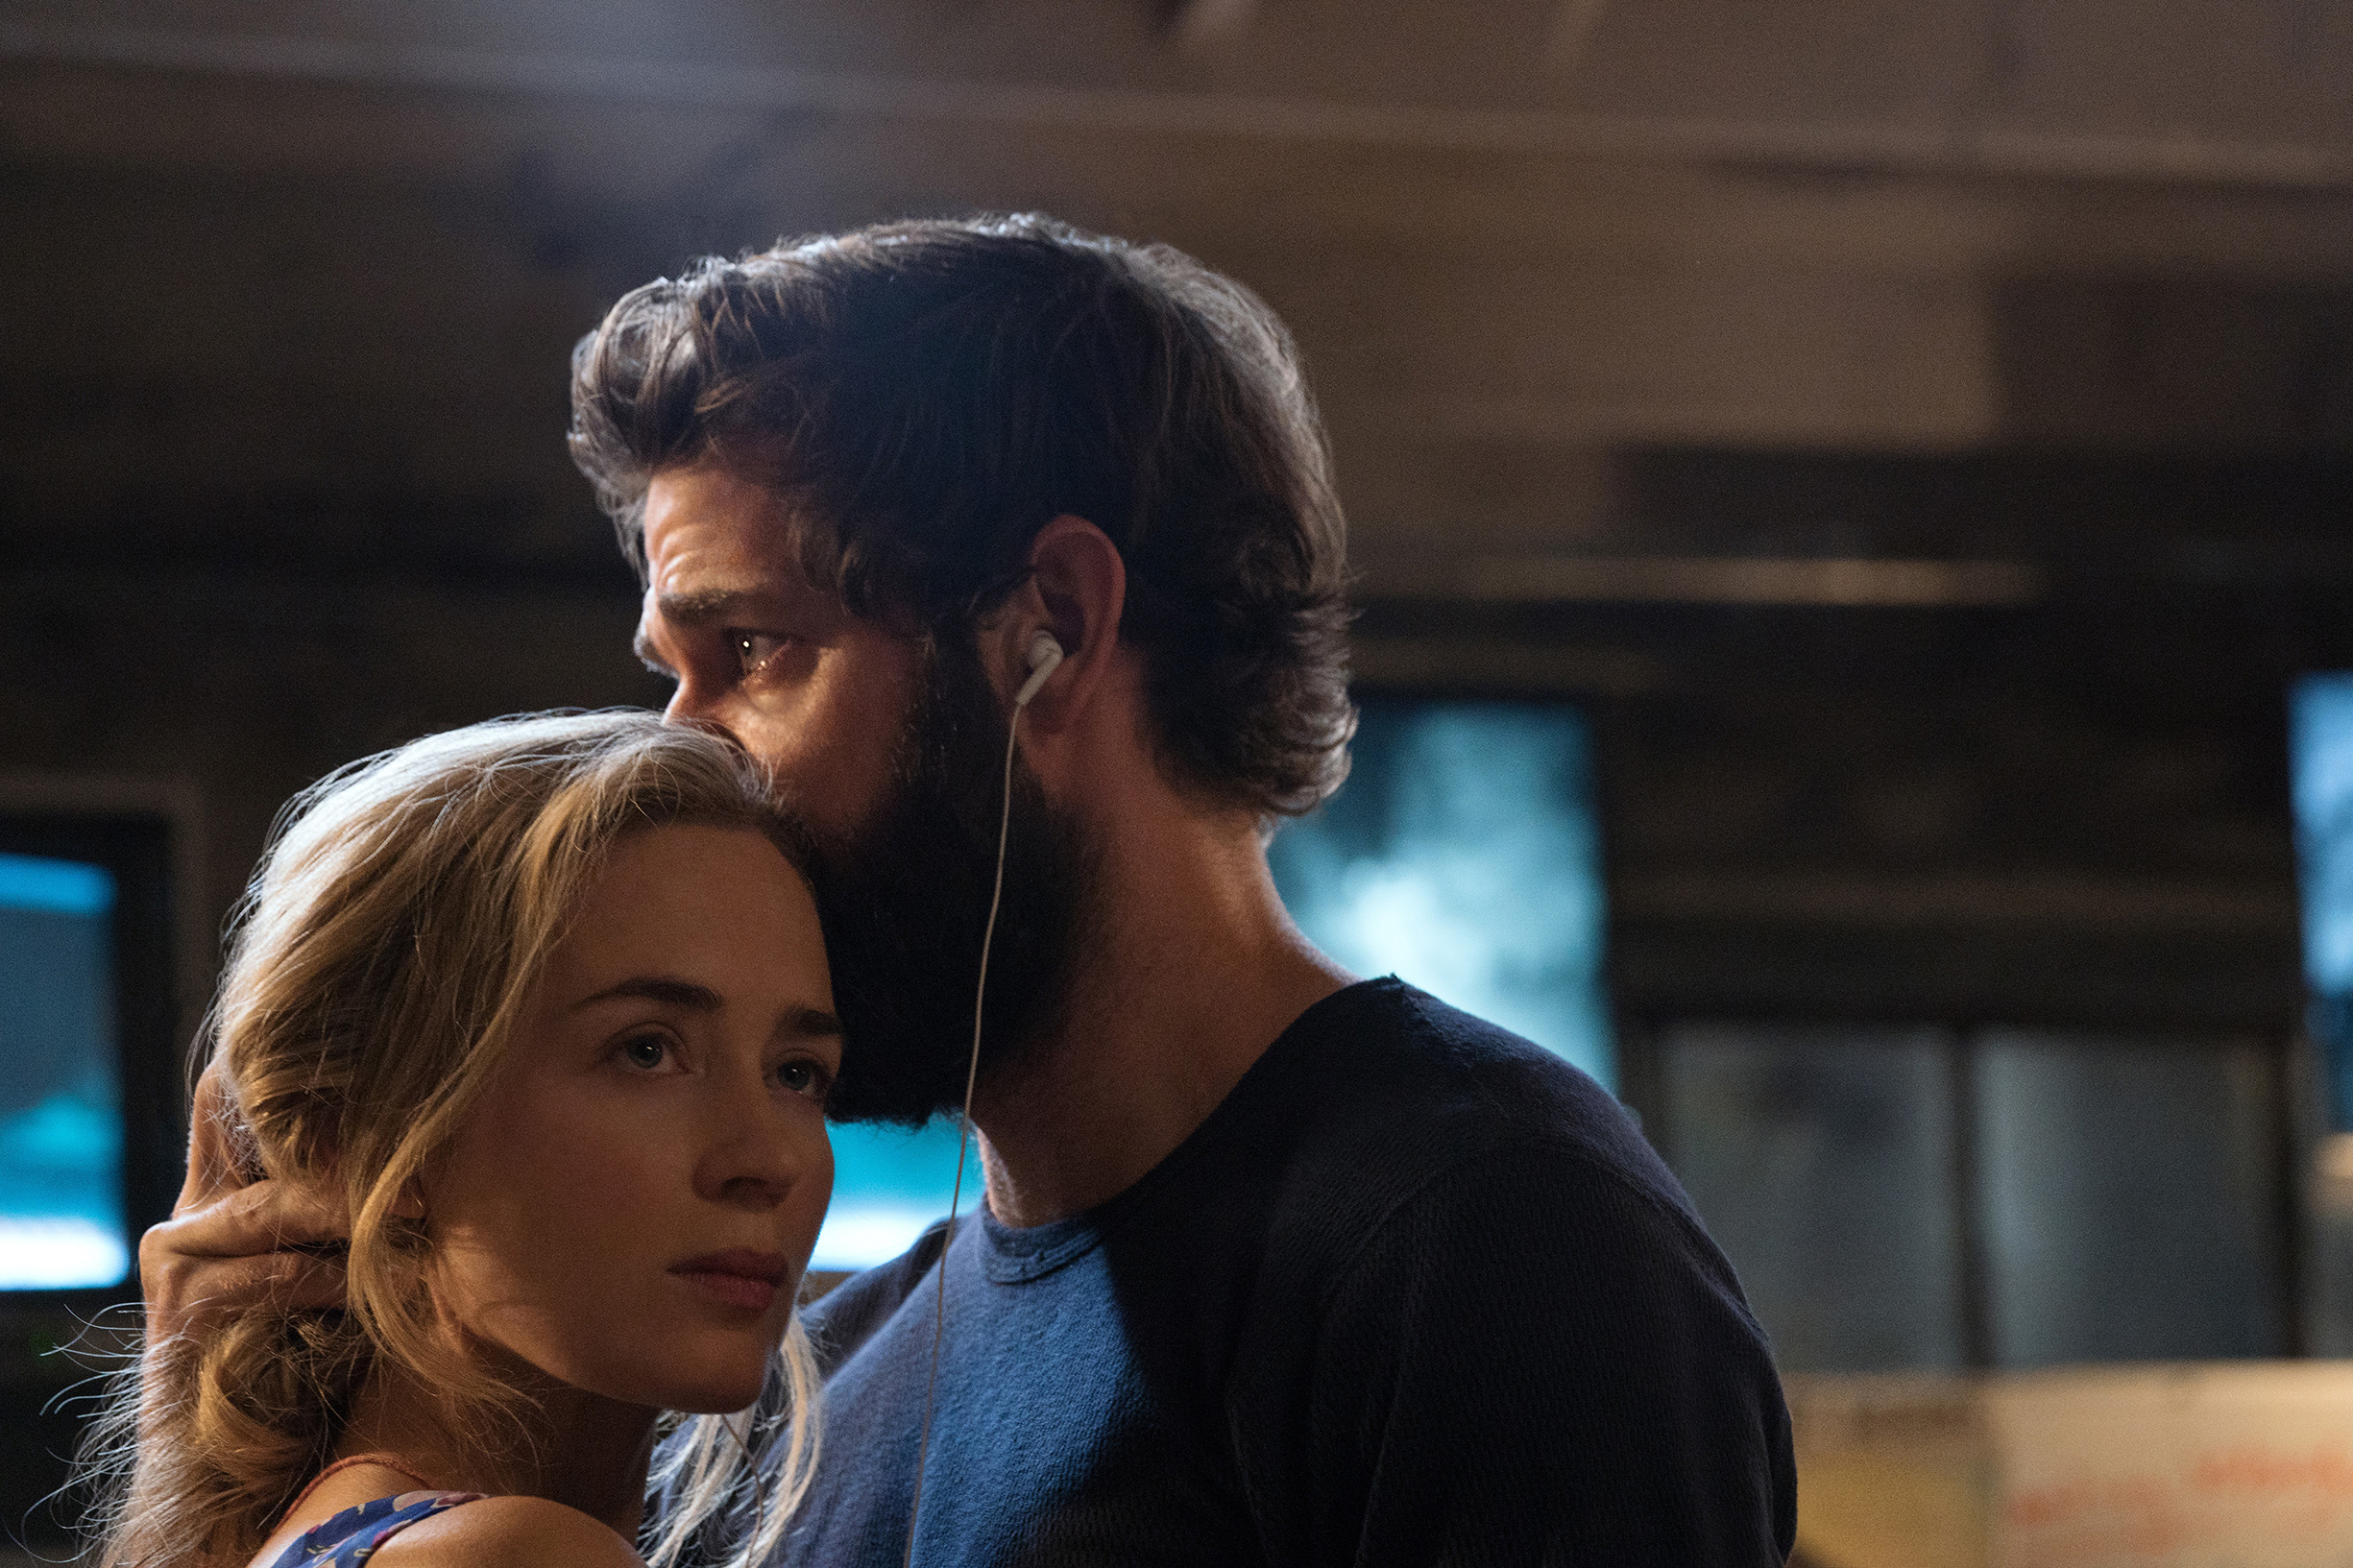 Emily Blunt and John Krasinski in 'A Quiet Place'